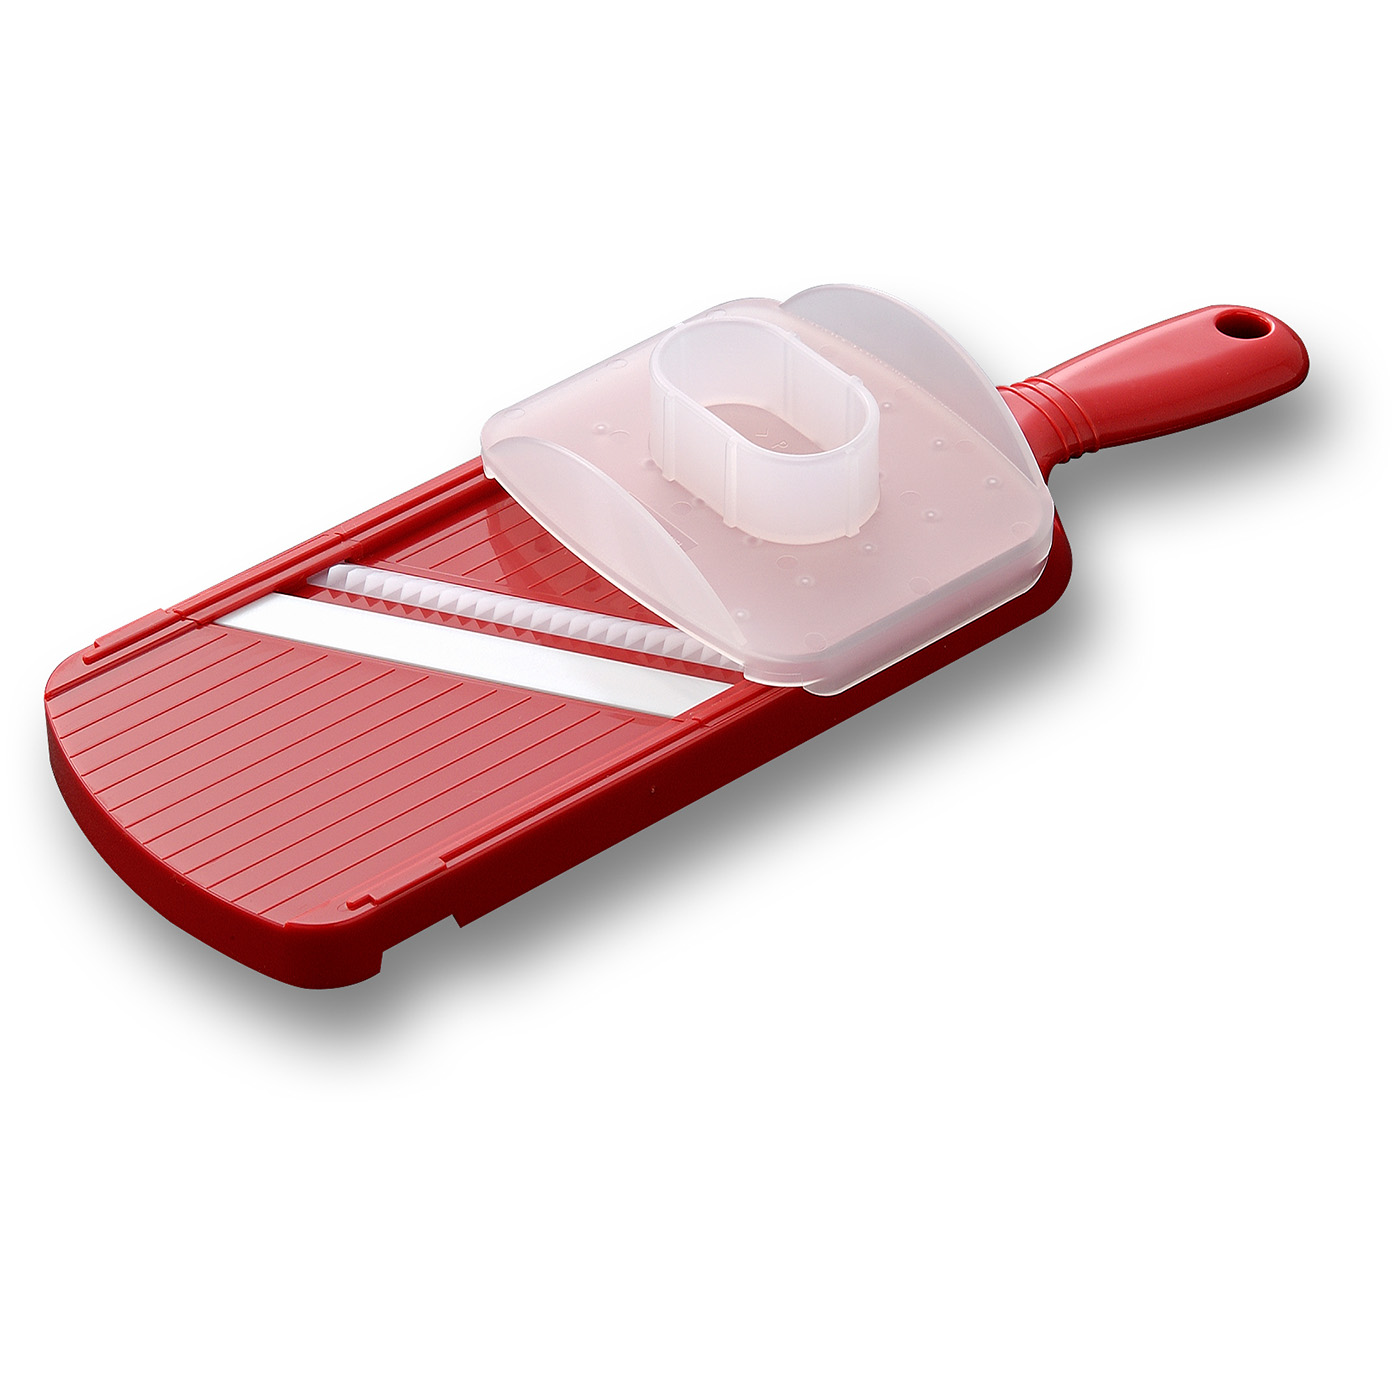 Kyocera Advanced Ceramics Julienne Vegetable Slicer, Red